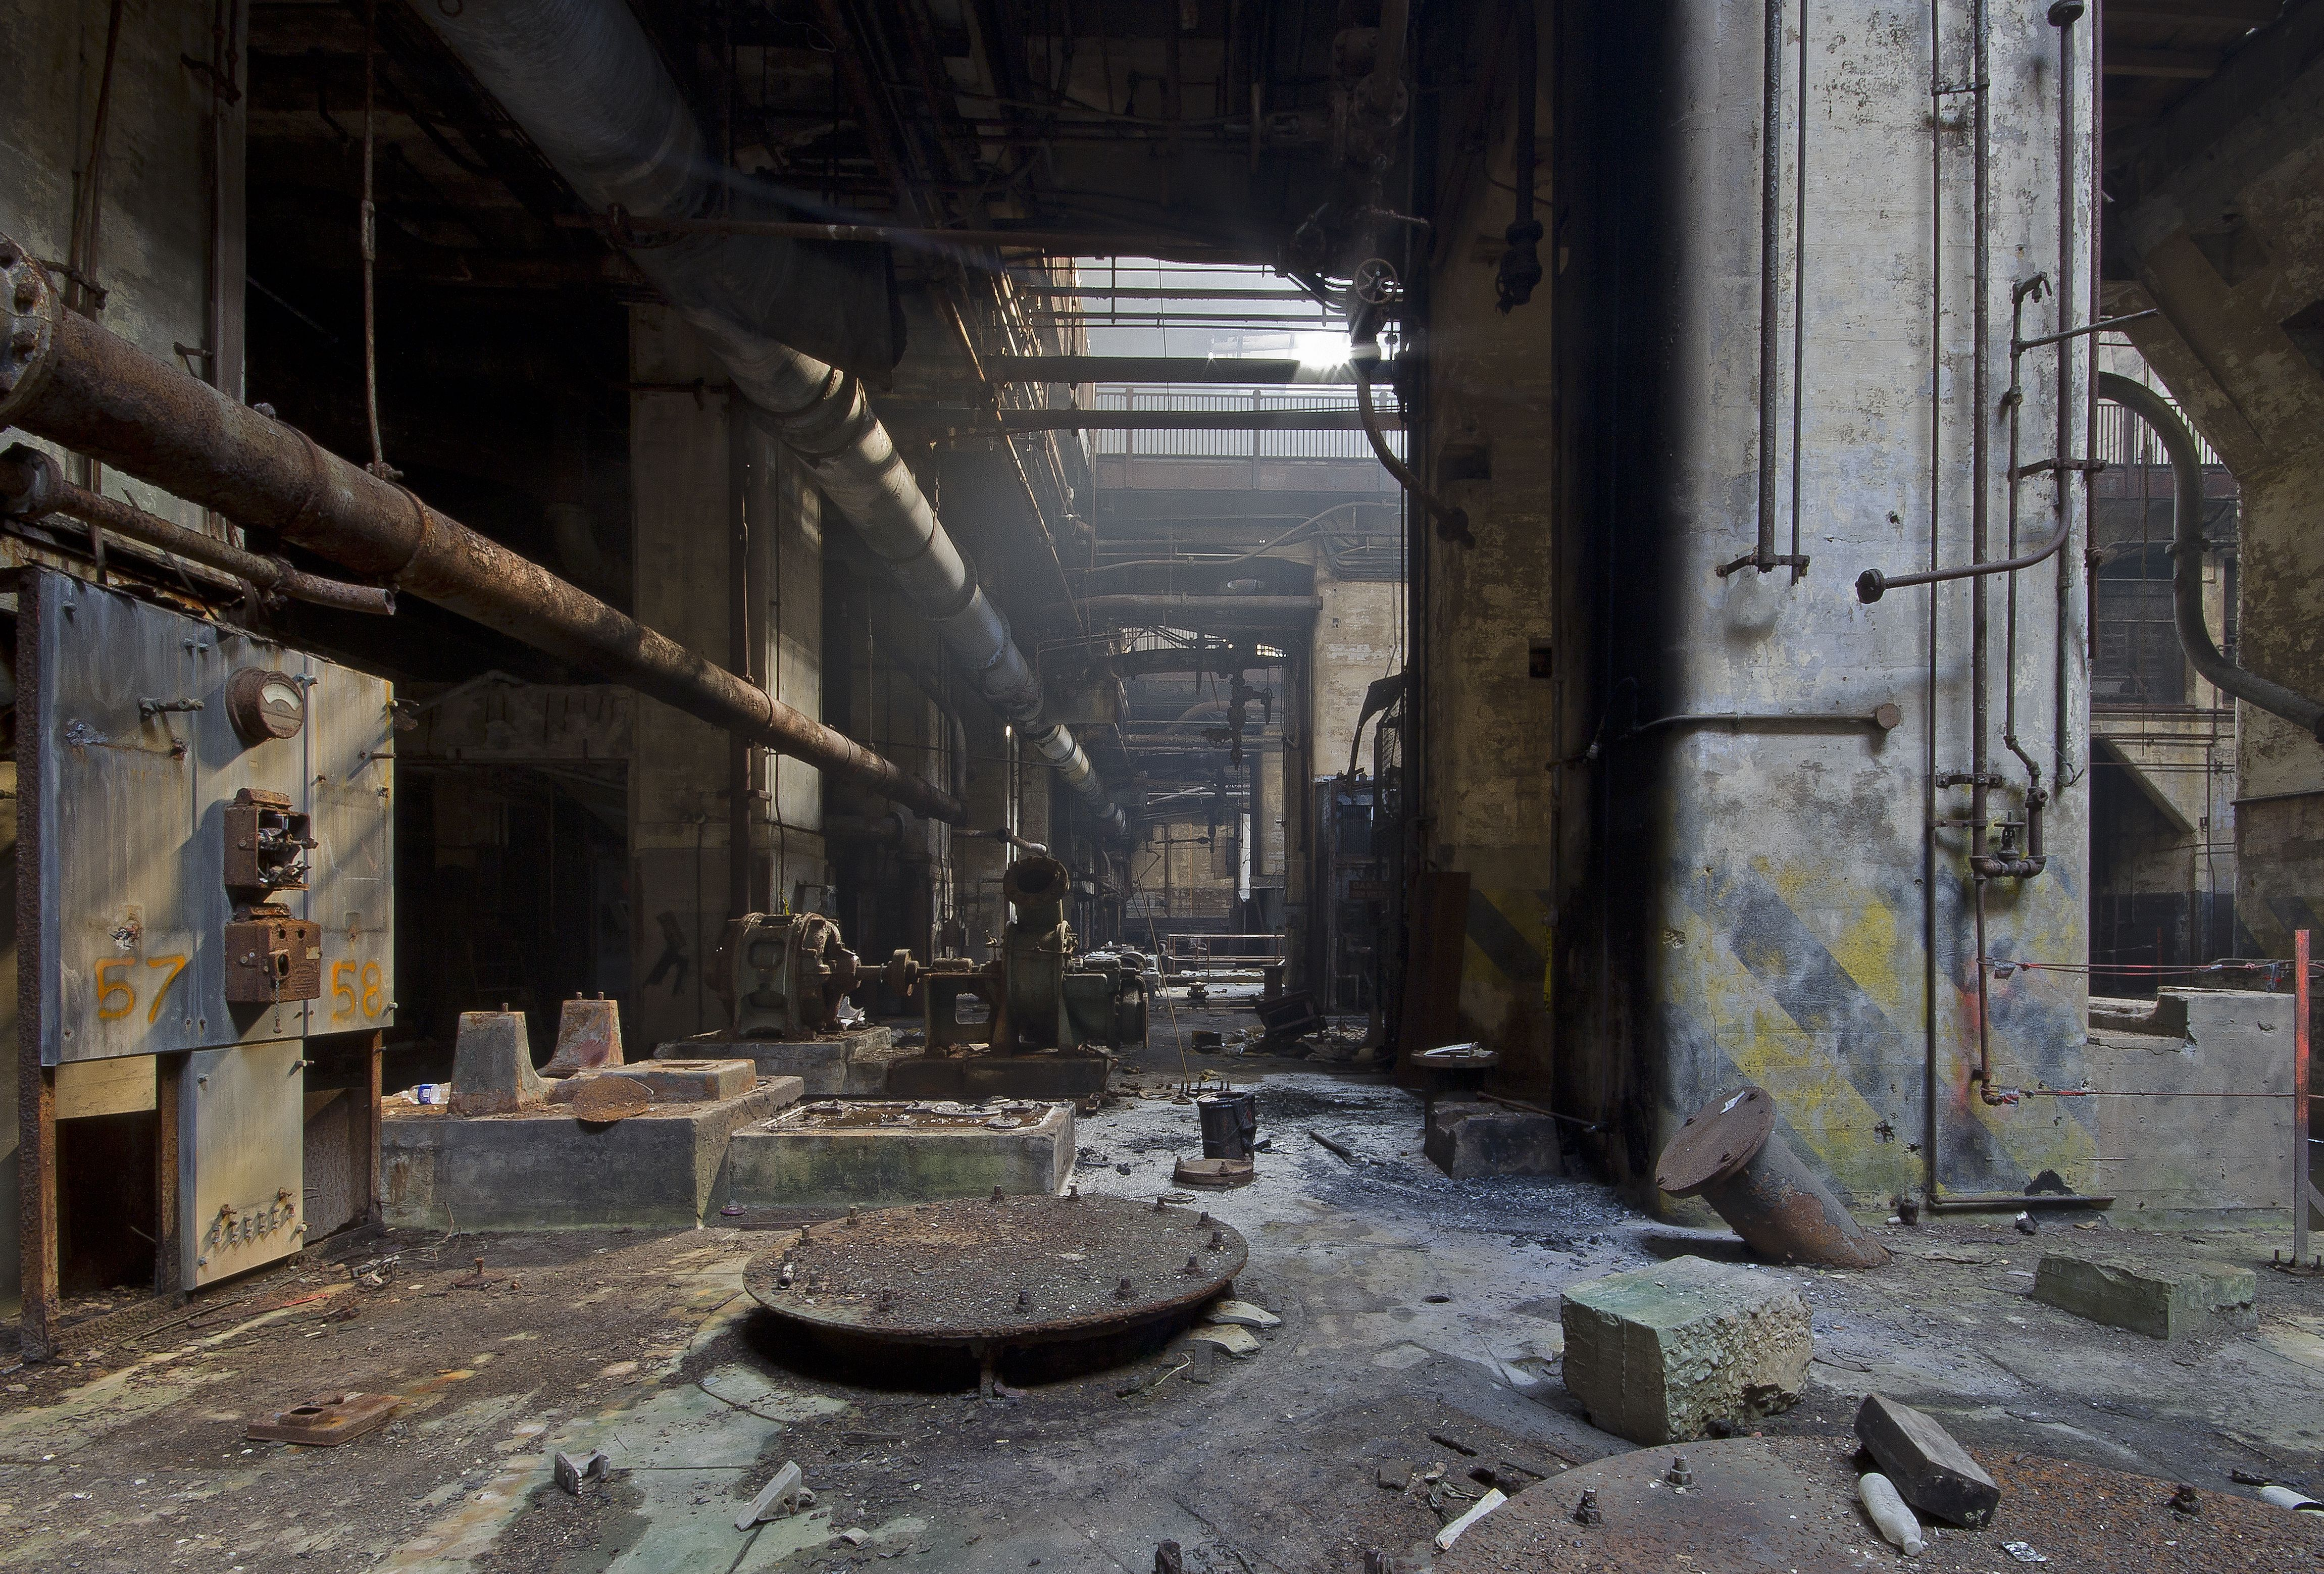 abandoned warehouse building - Google Search | Factory ...  abandoned wareh...